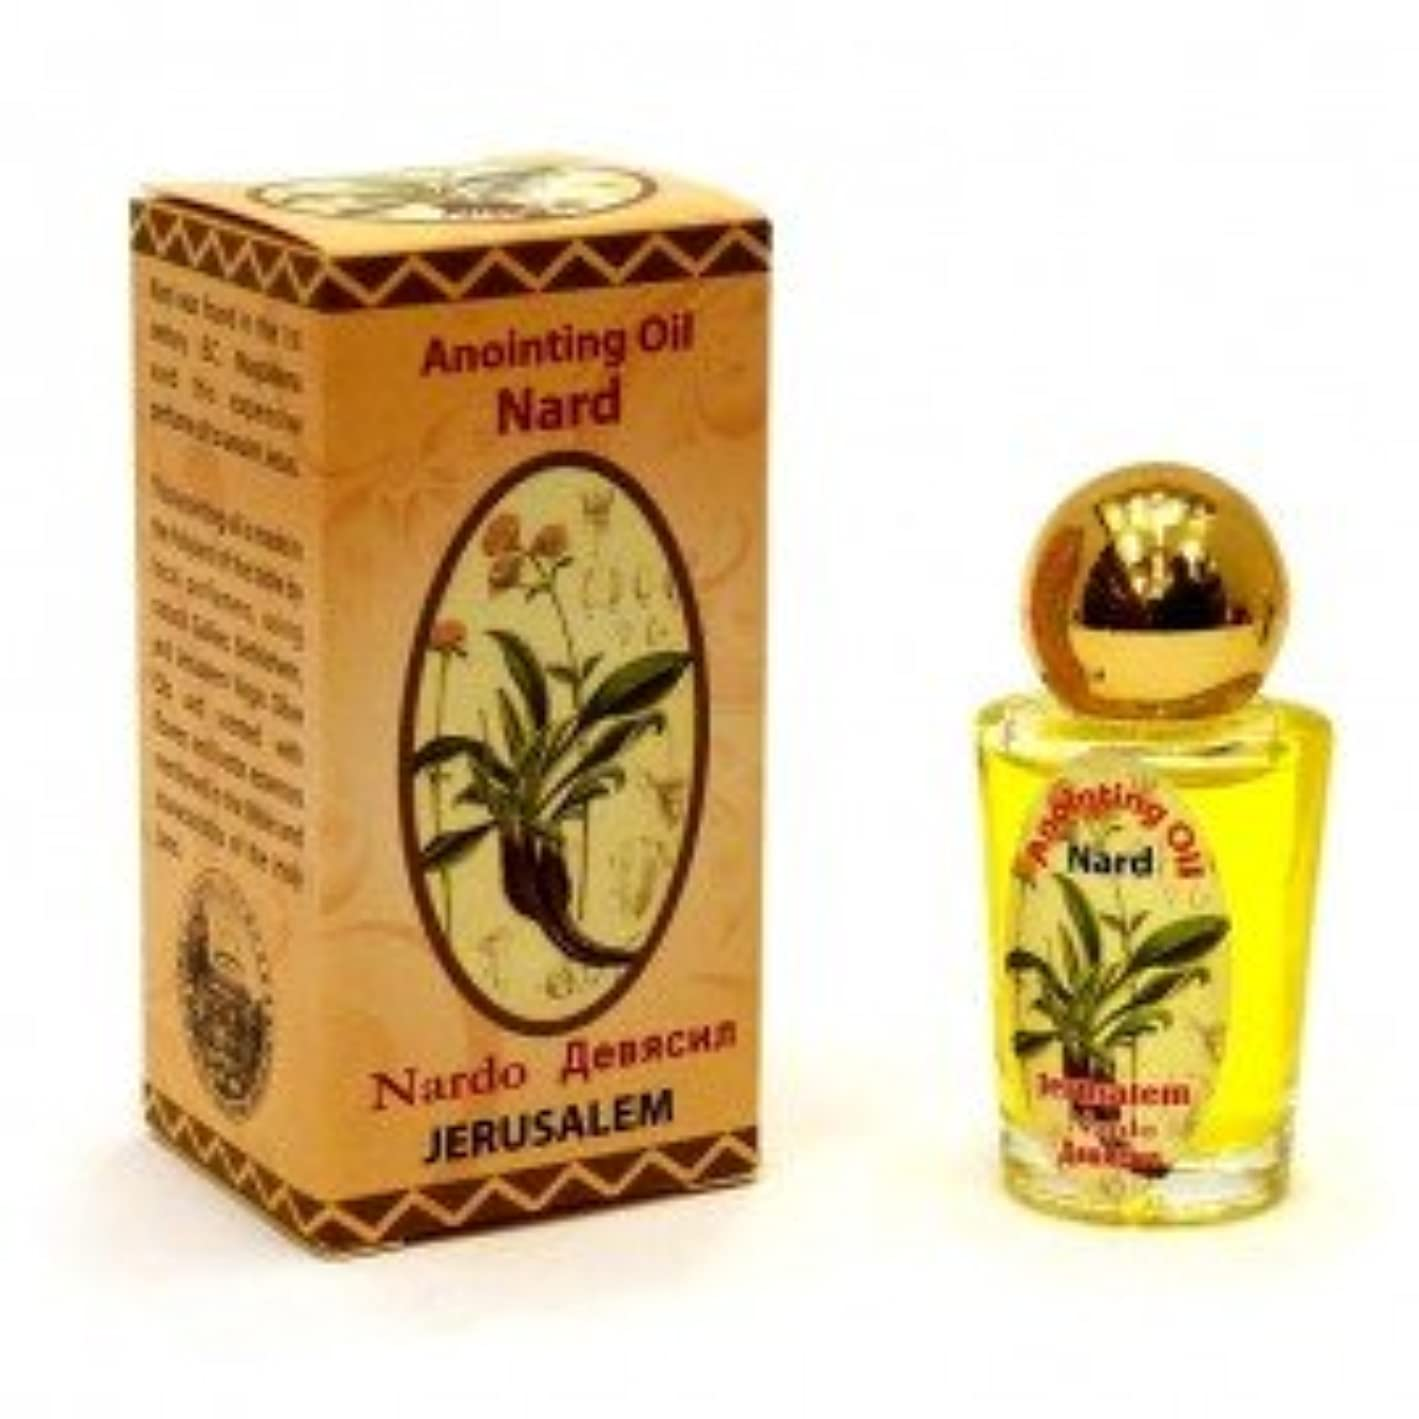 定期的スロー破壊するHoly Land Blessed Anointingオイル30 ml Biblical Fragrance Jerusalem byベツレヘムギフトTM